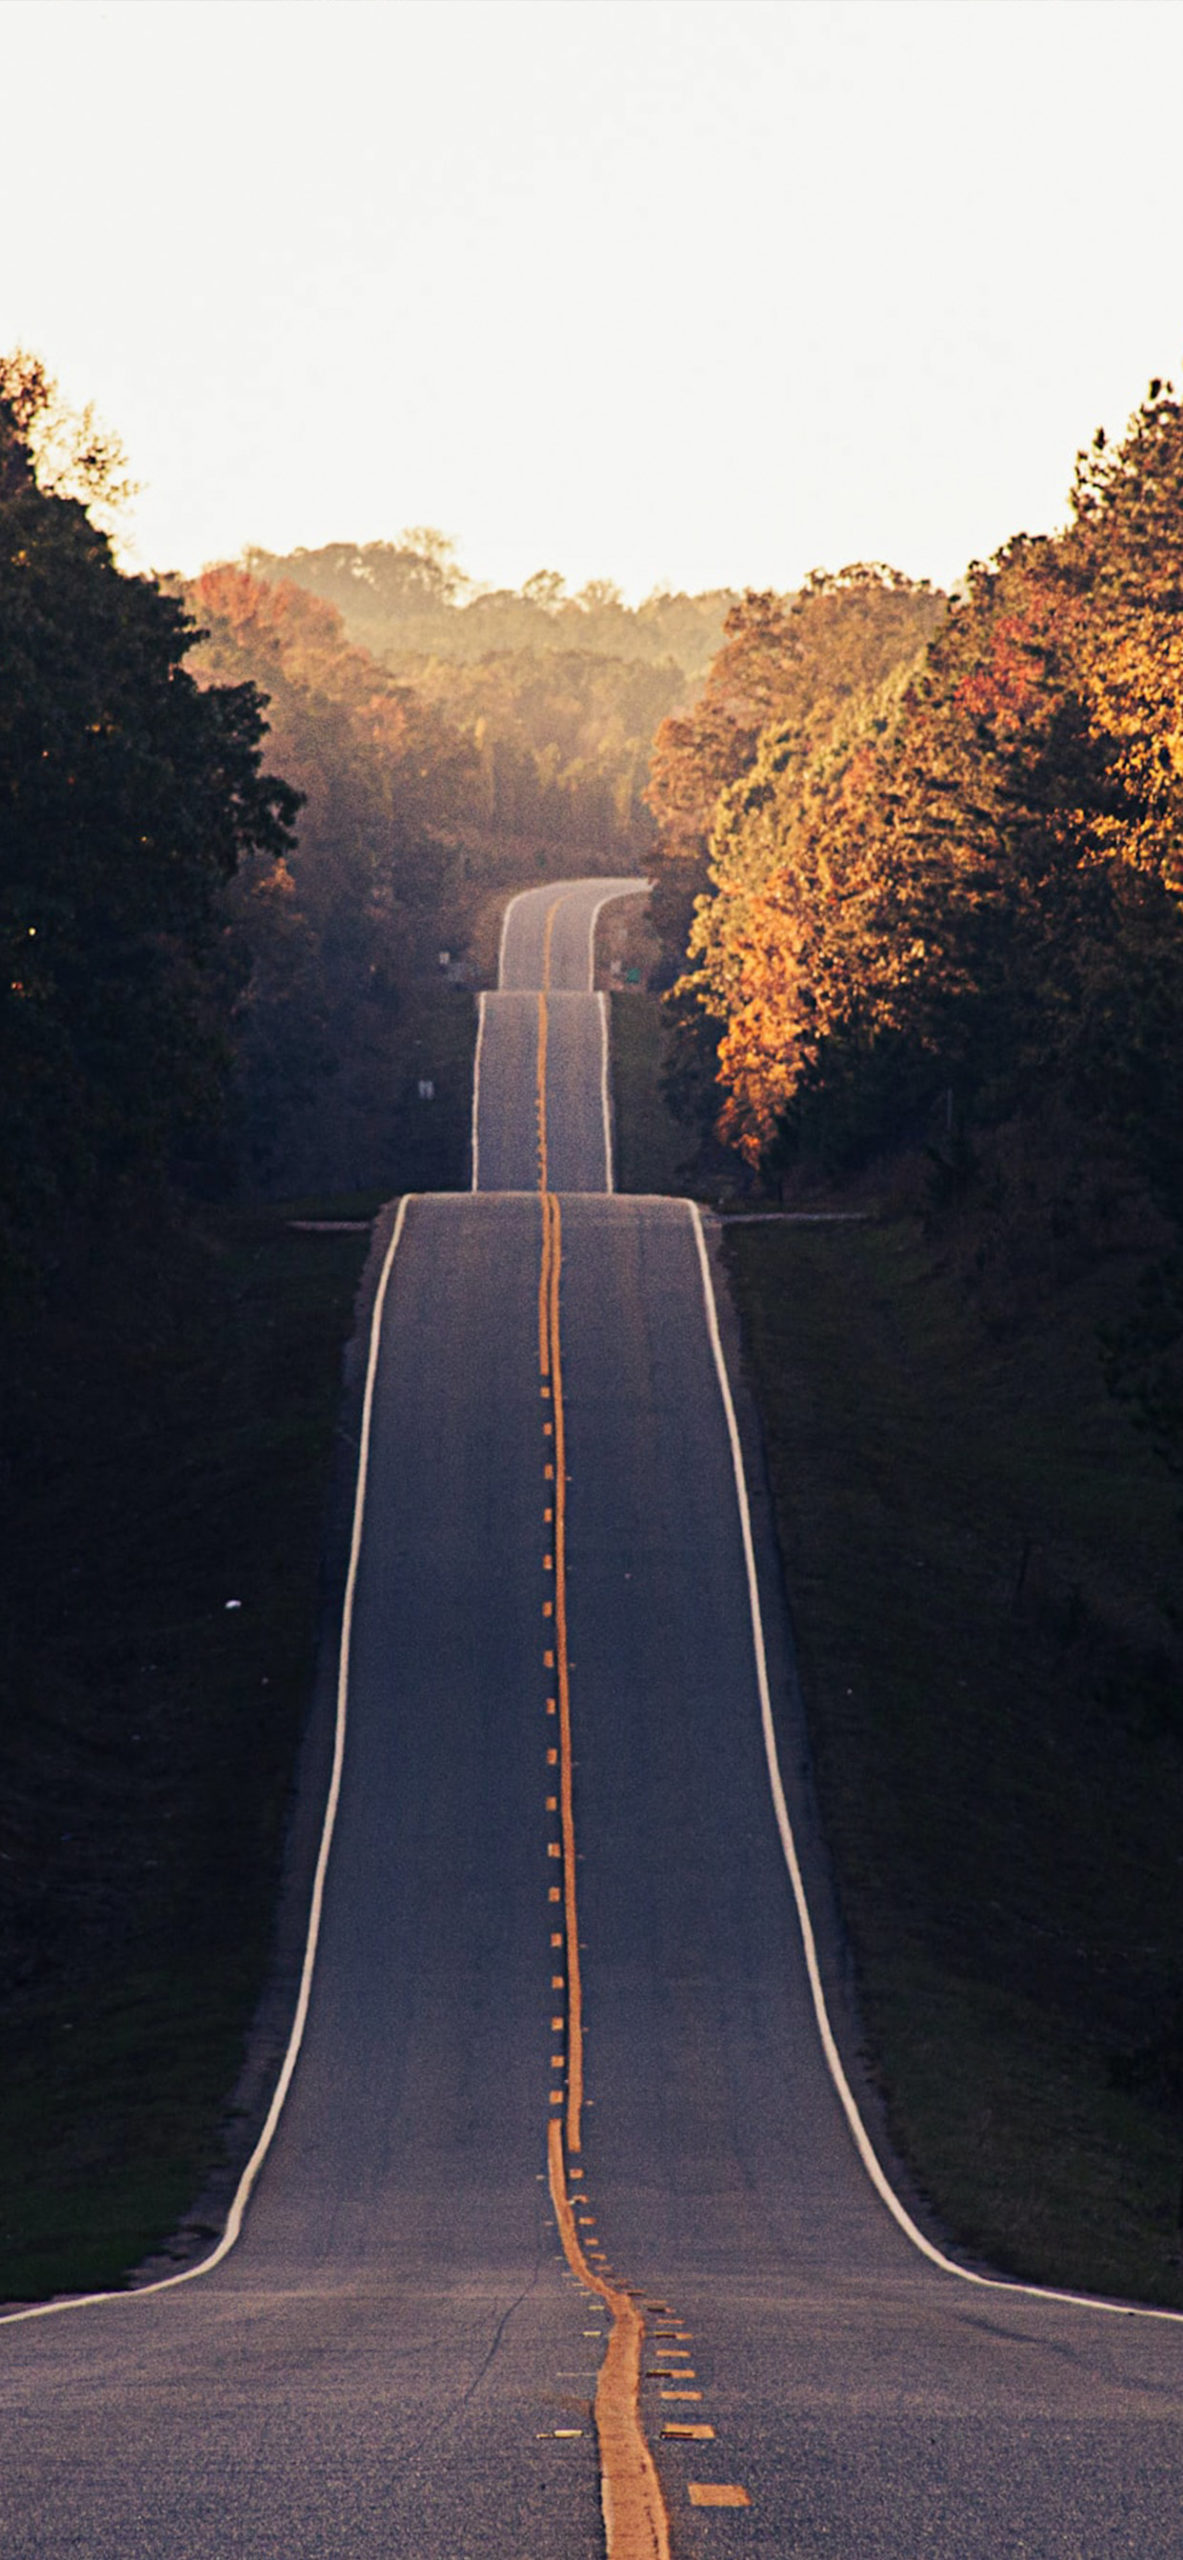 iphone wallpapers road1 scaled Road